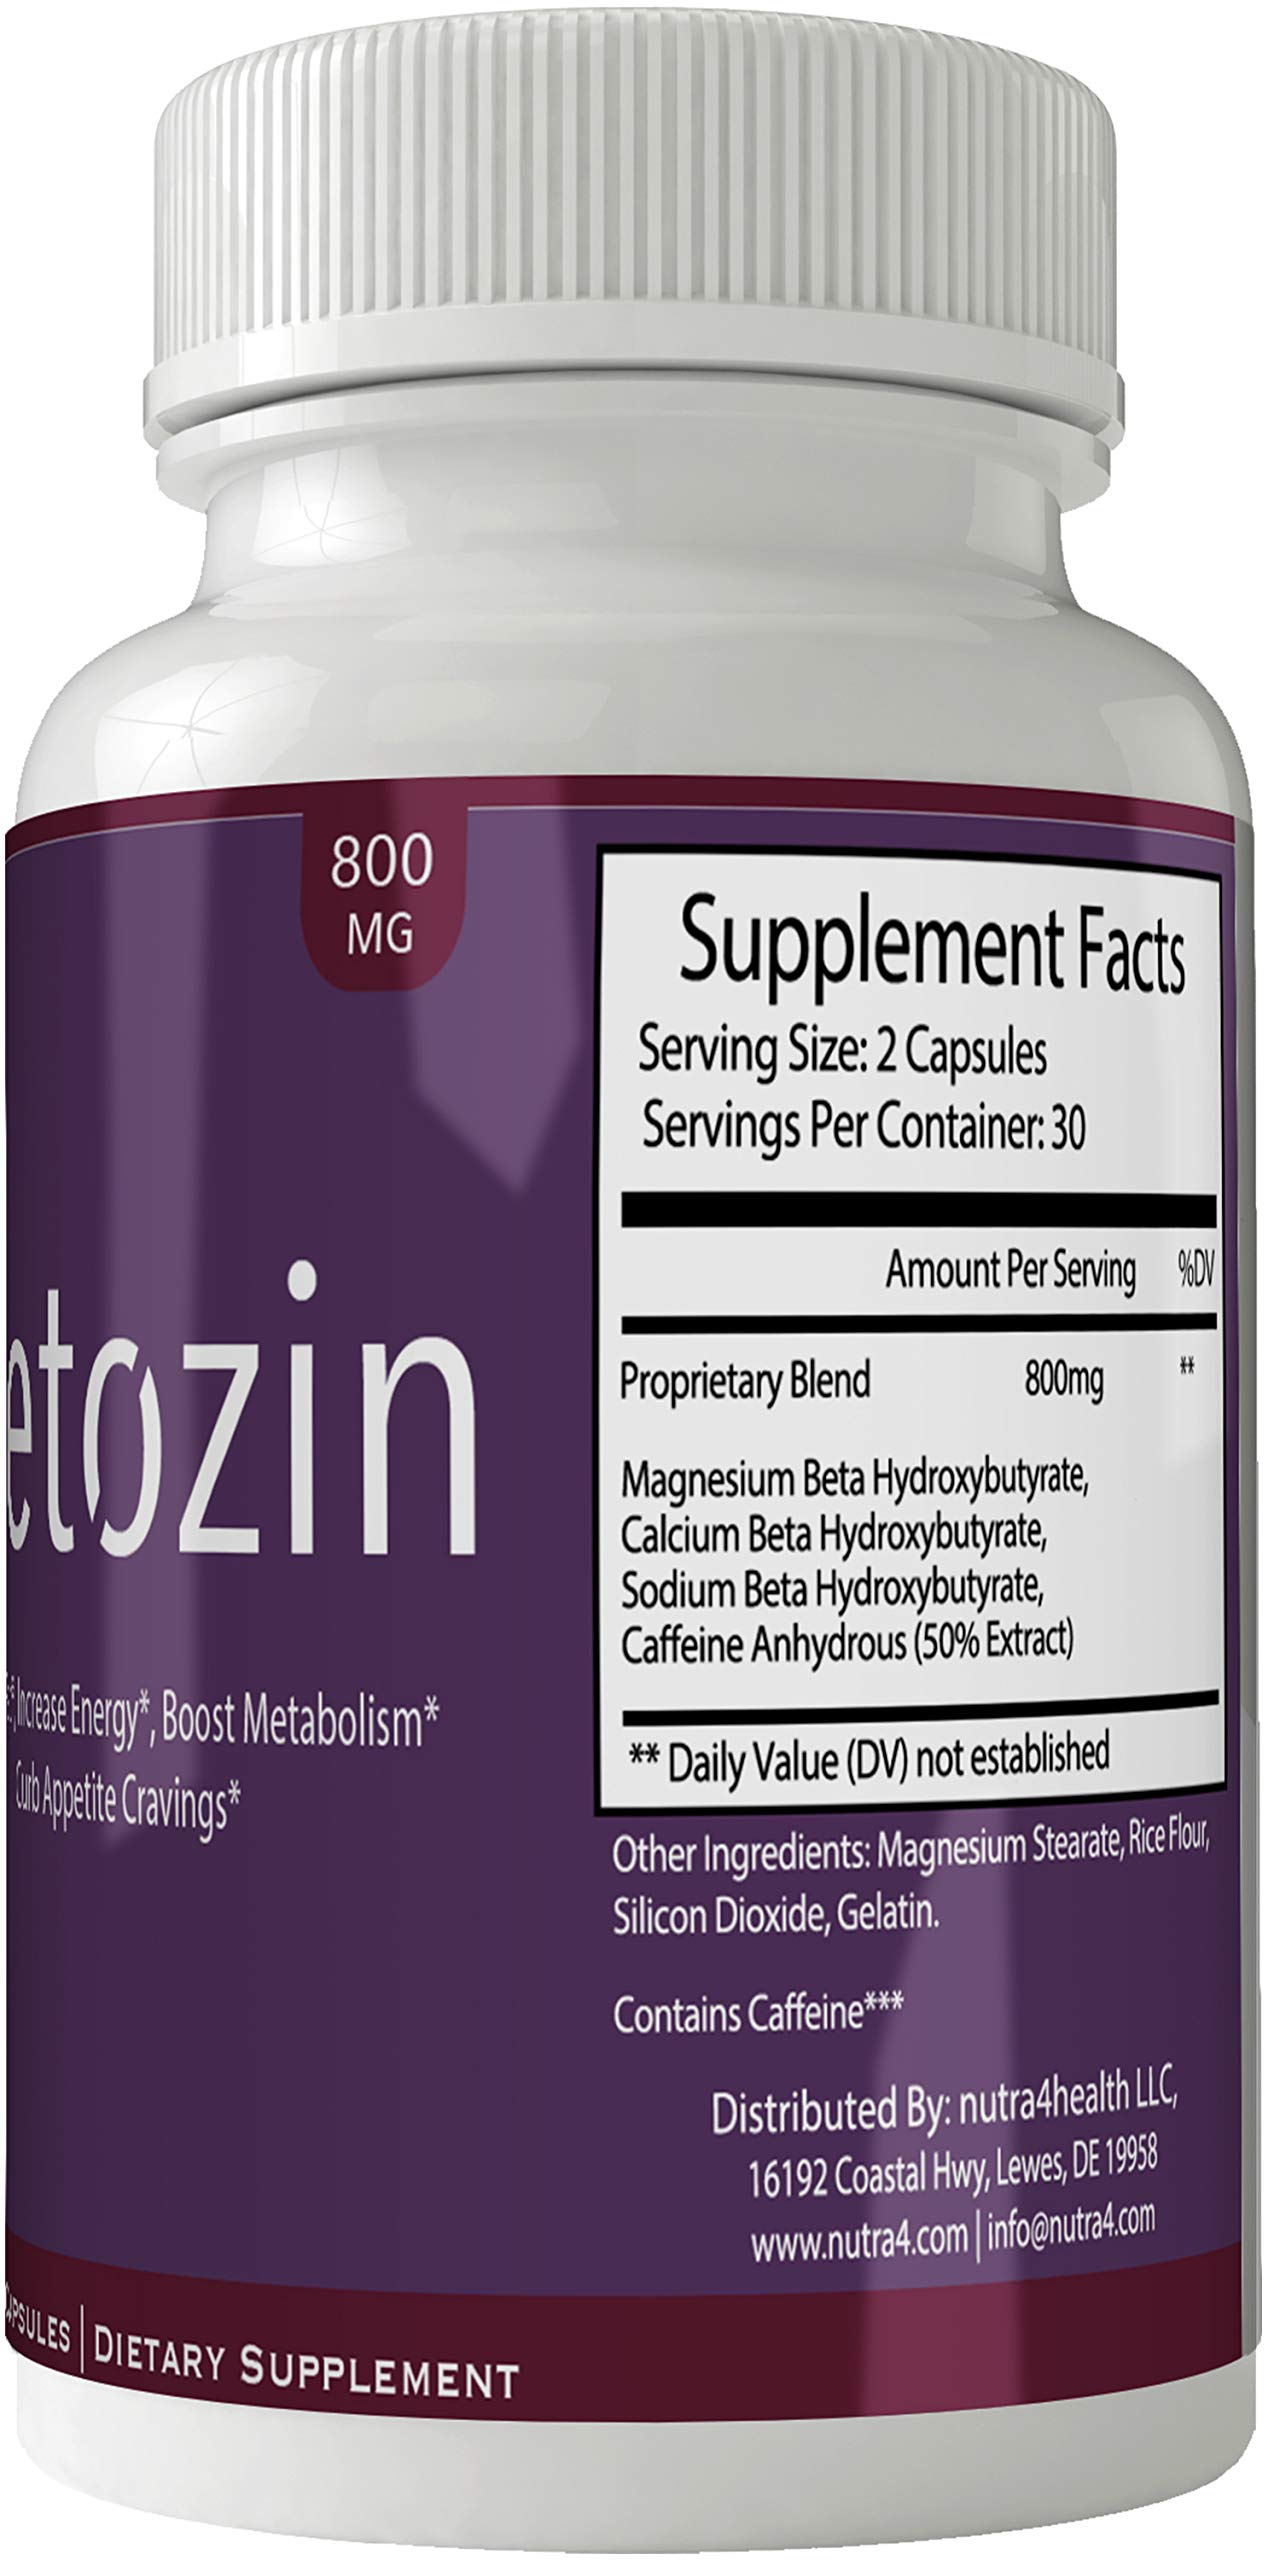 Ketozin Weight Loss Pills Advance Weight Loss Supplement Appetite Suppressant Natural Ketogenic 800 mg Formula with BHB Salts Ketone Diet Capsules to Boost Metabolism, Energy and Focus by nutra4health LLC (Image #3)